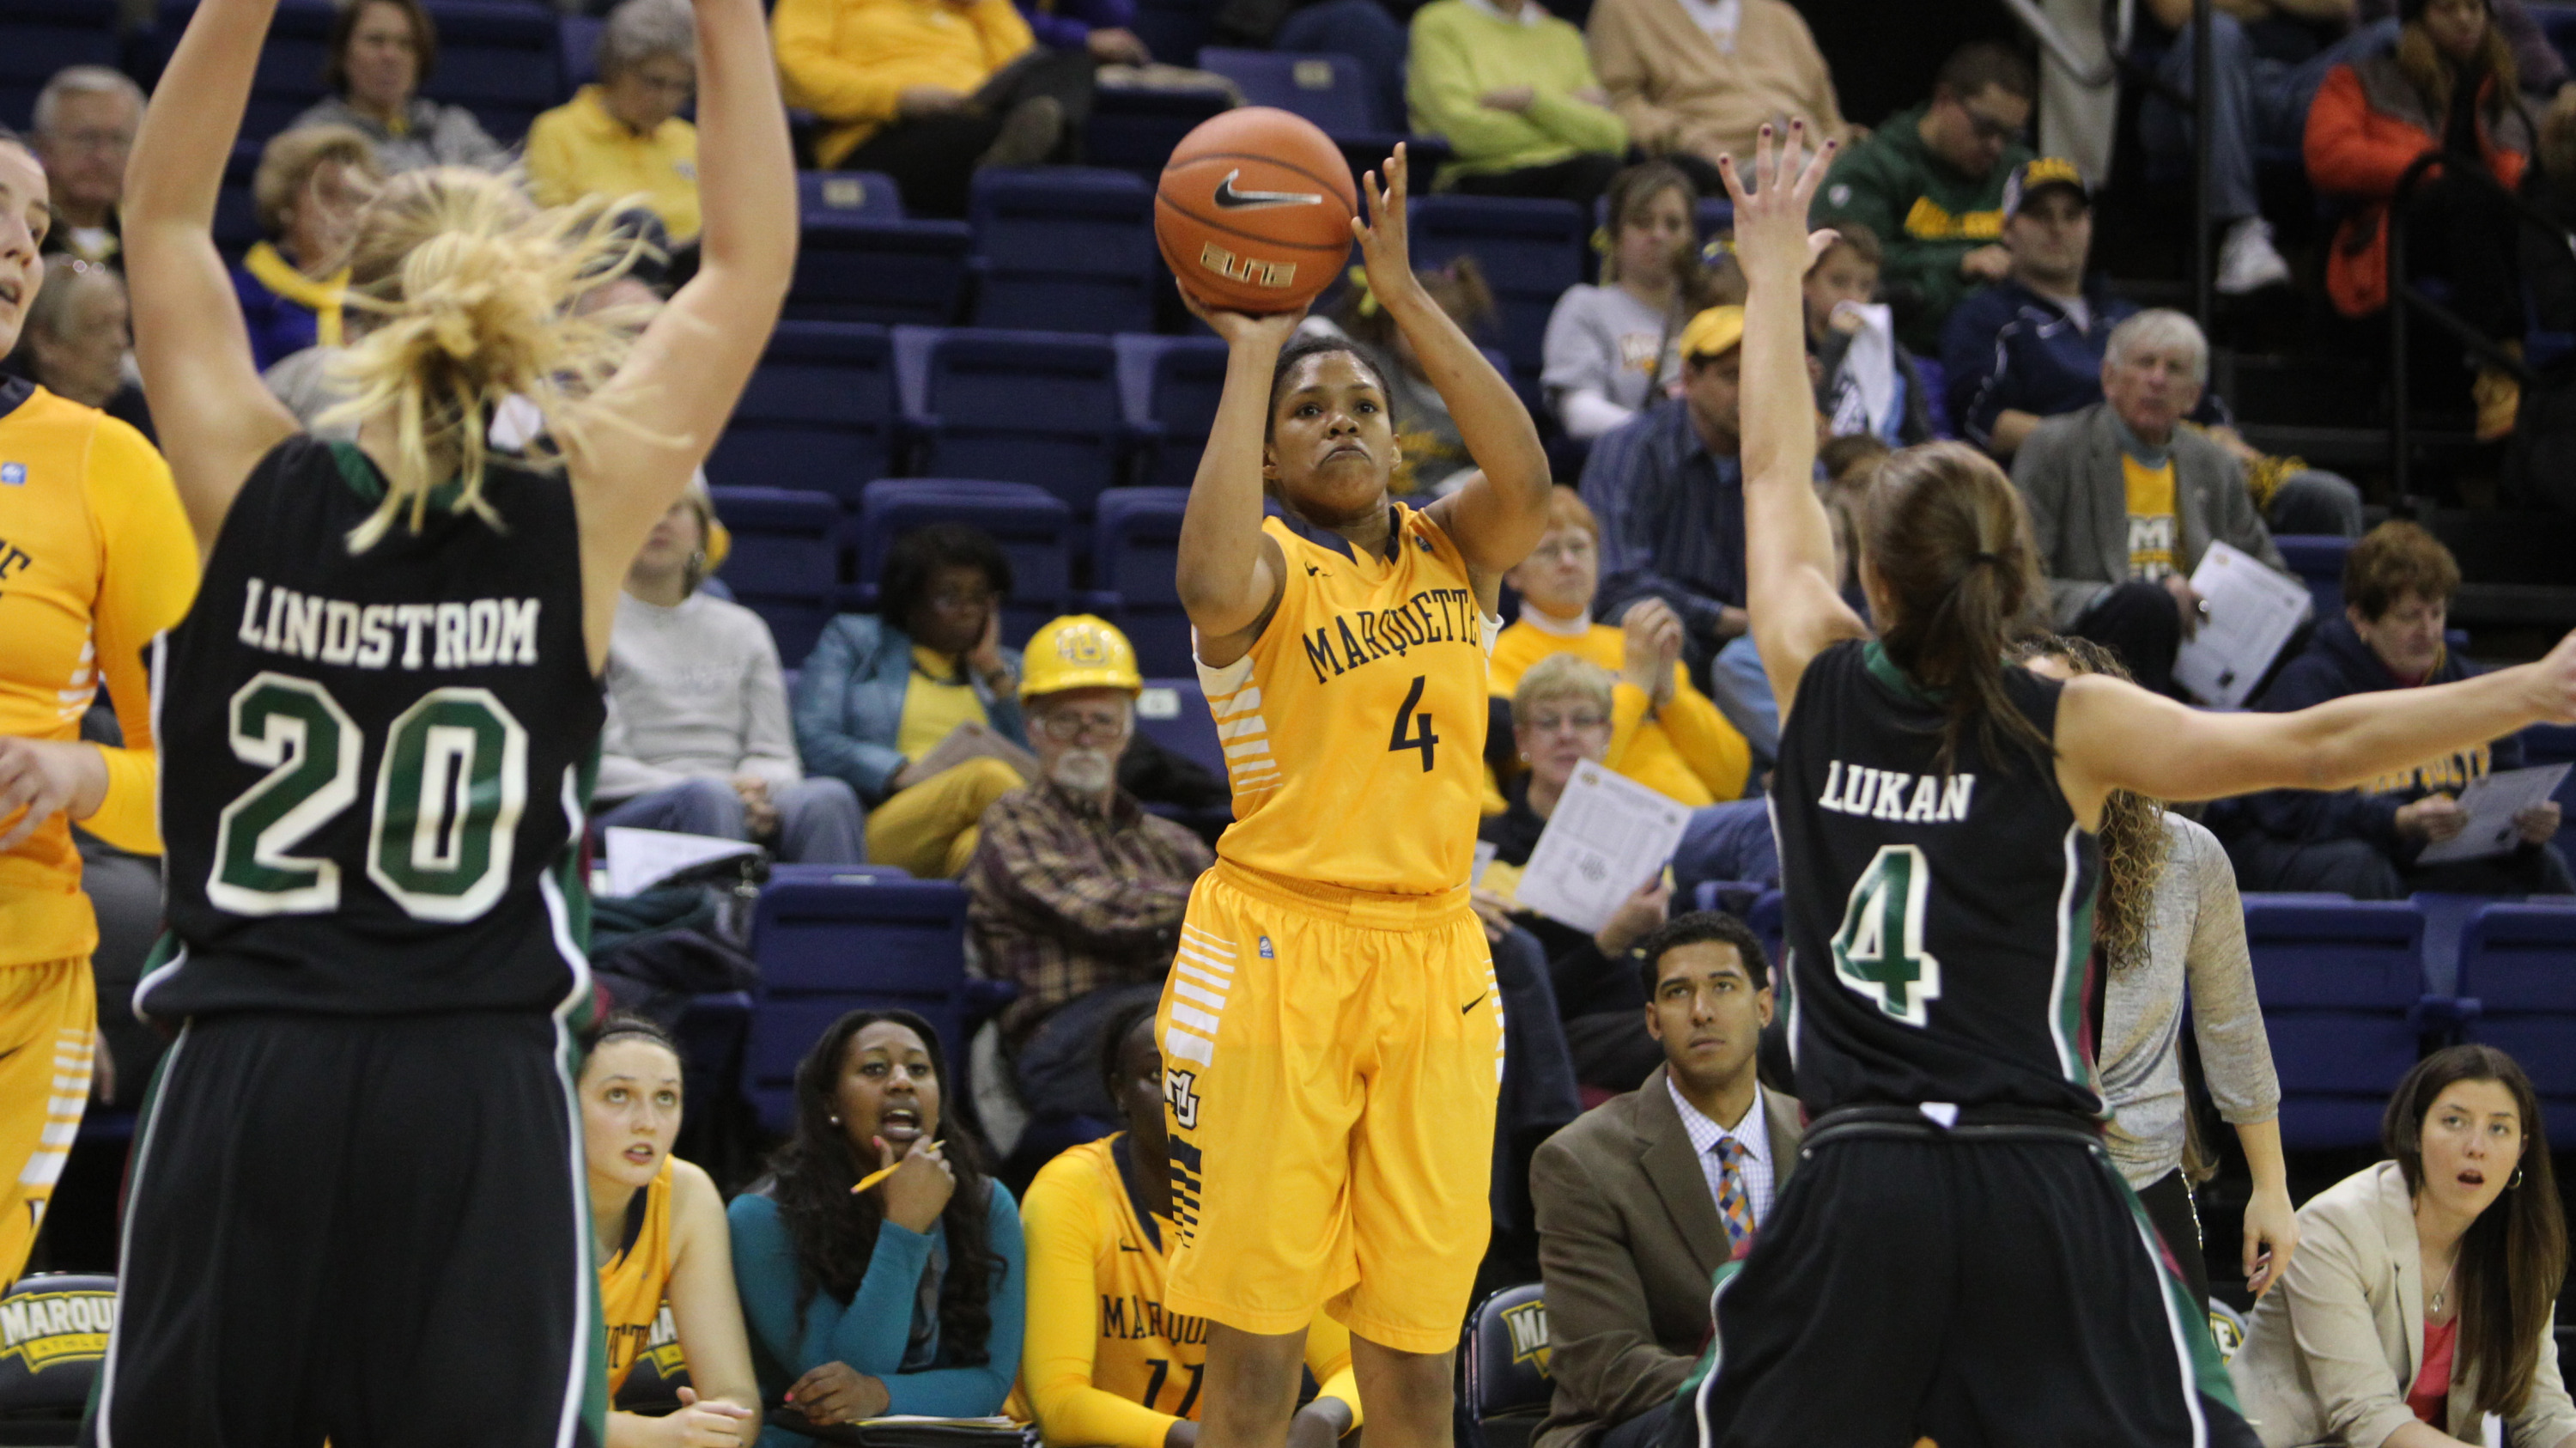 Arlesia Morse connected on three 3-point shots on Tuesday